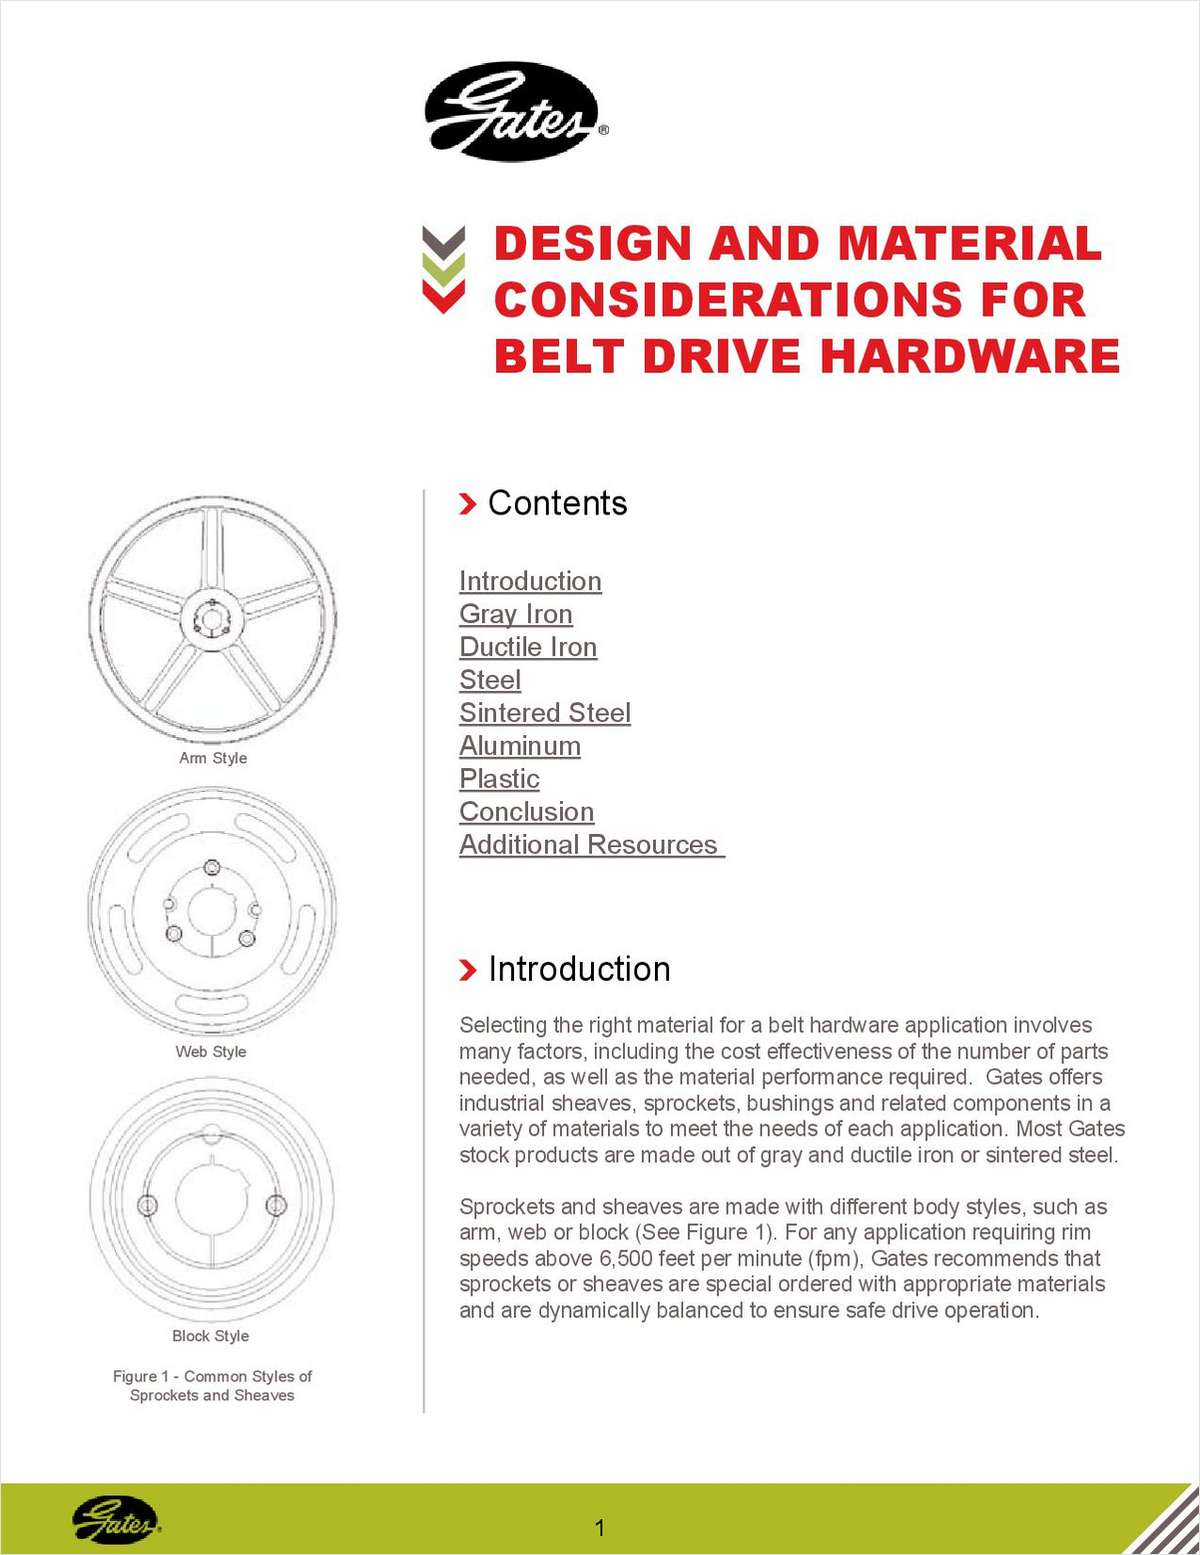 Design and Material Considerations for Belt Drive Hardware